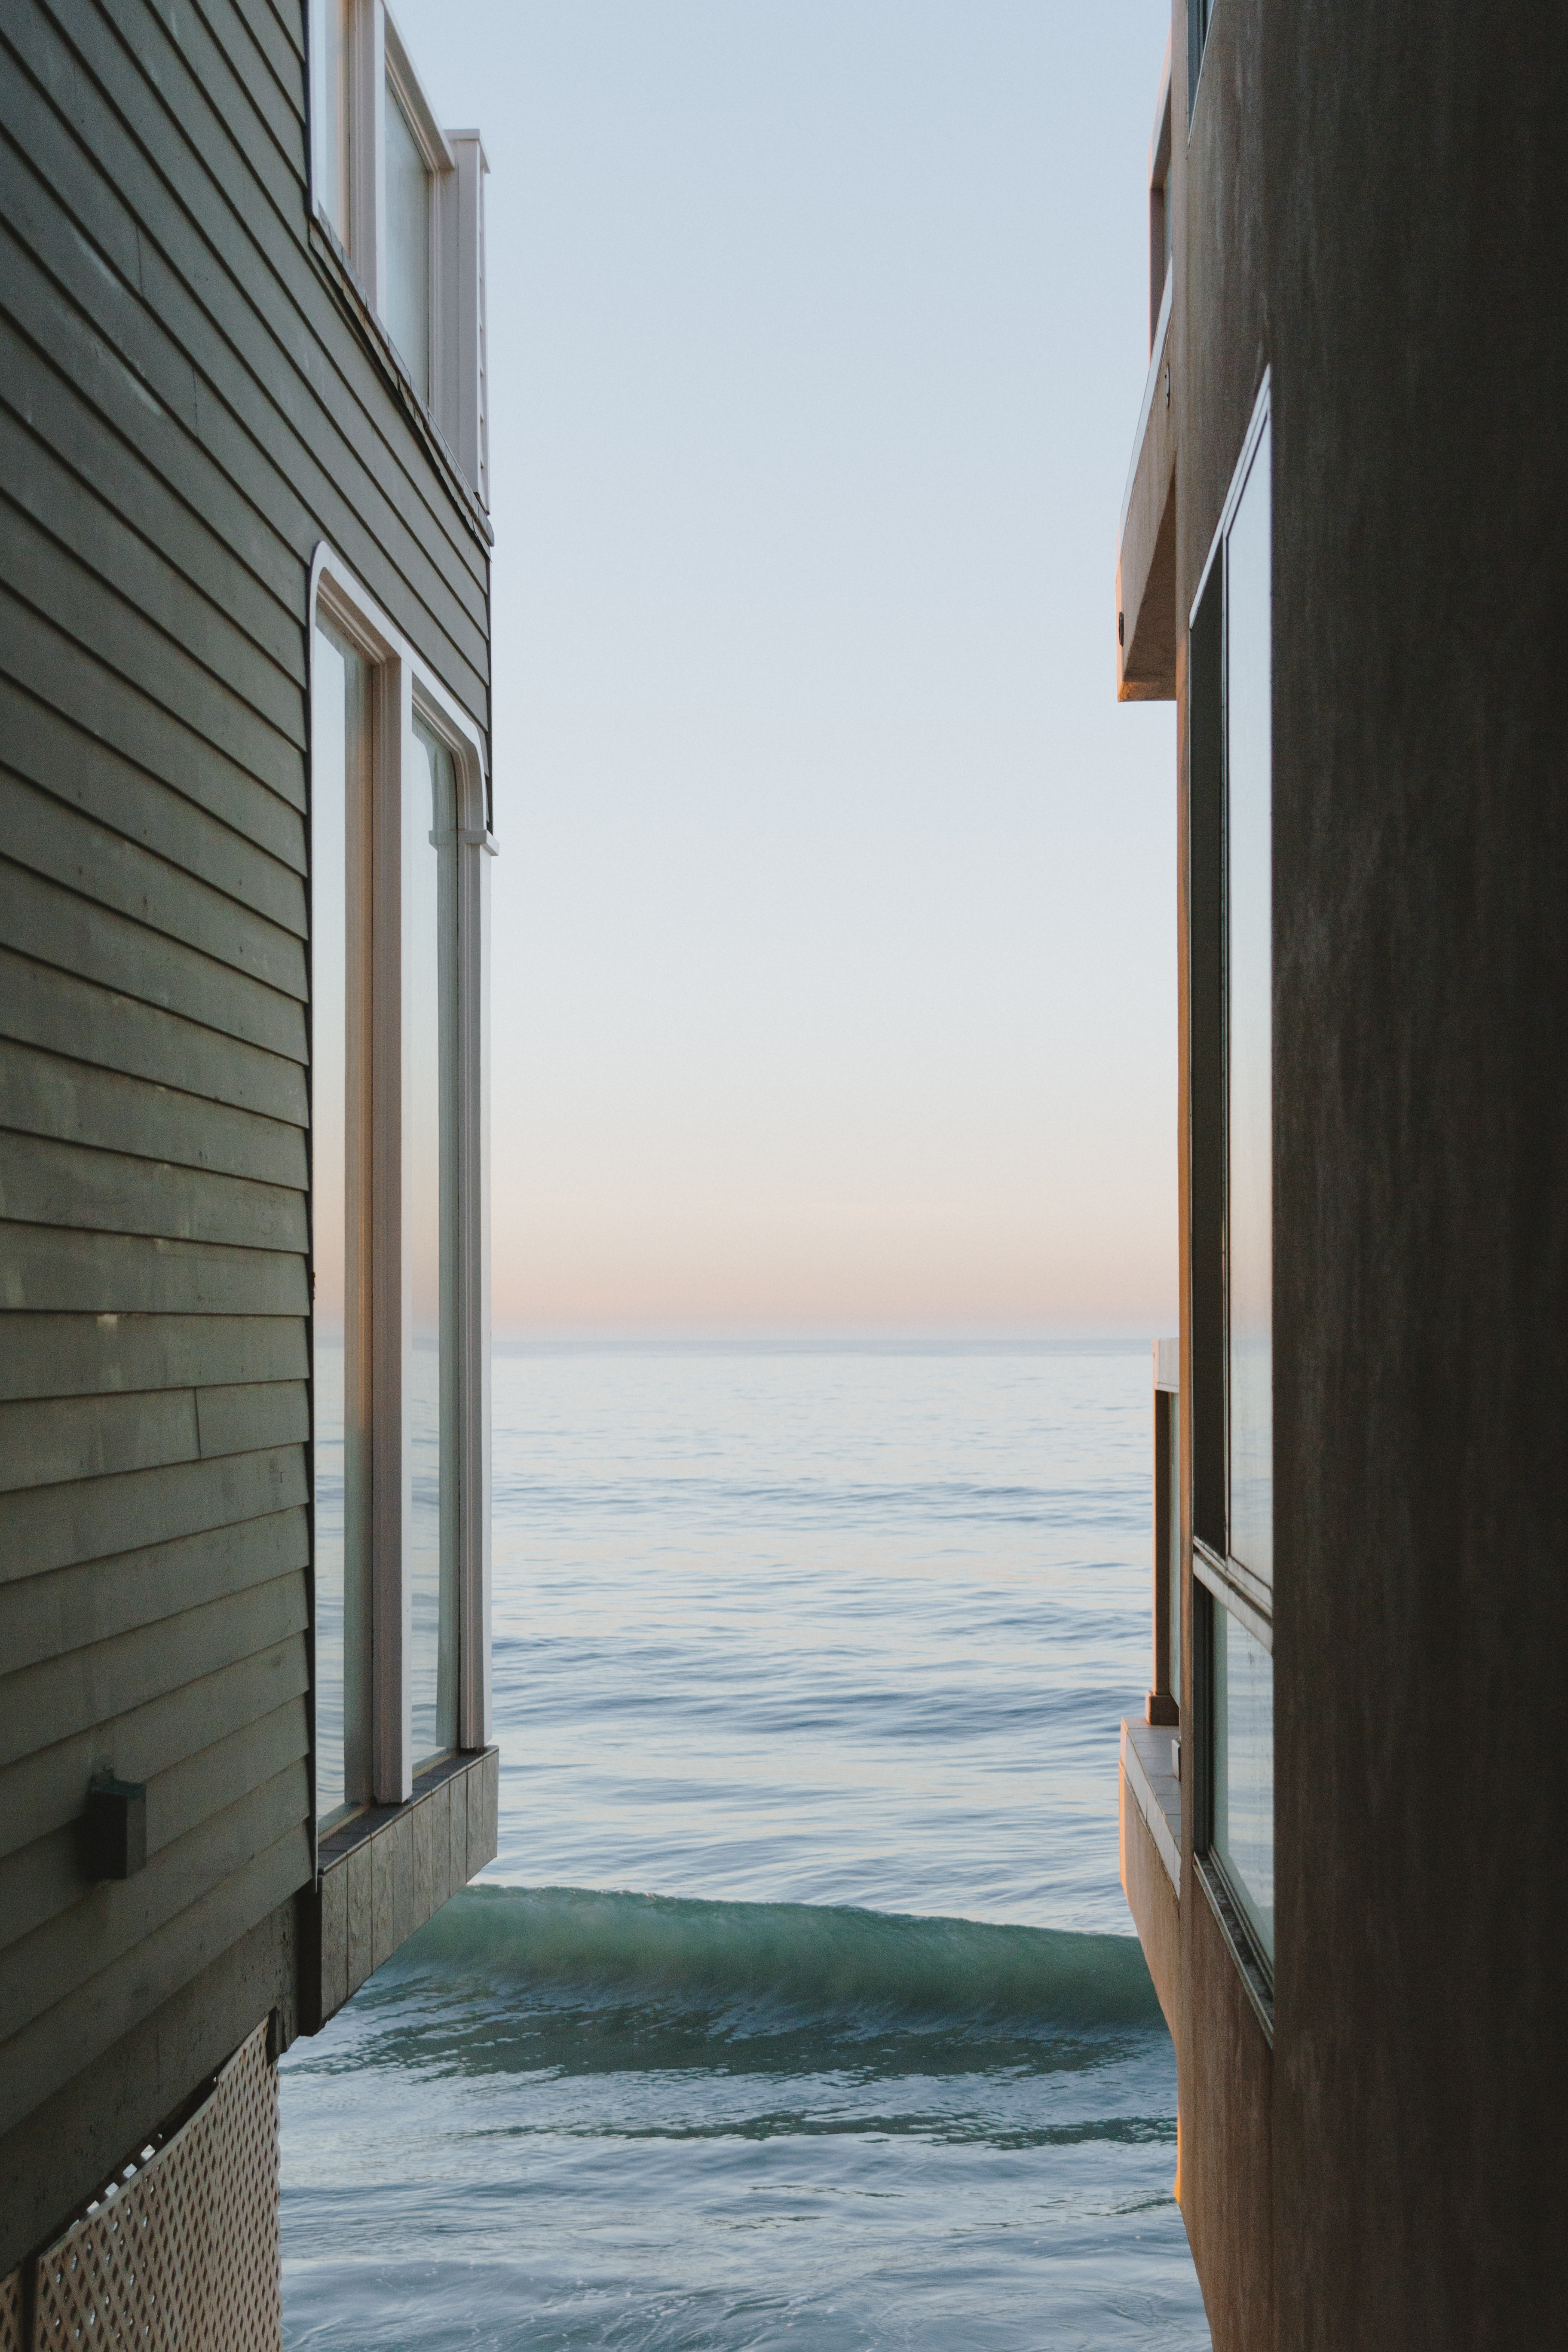 house in front of body of water